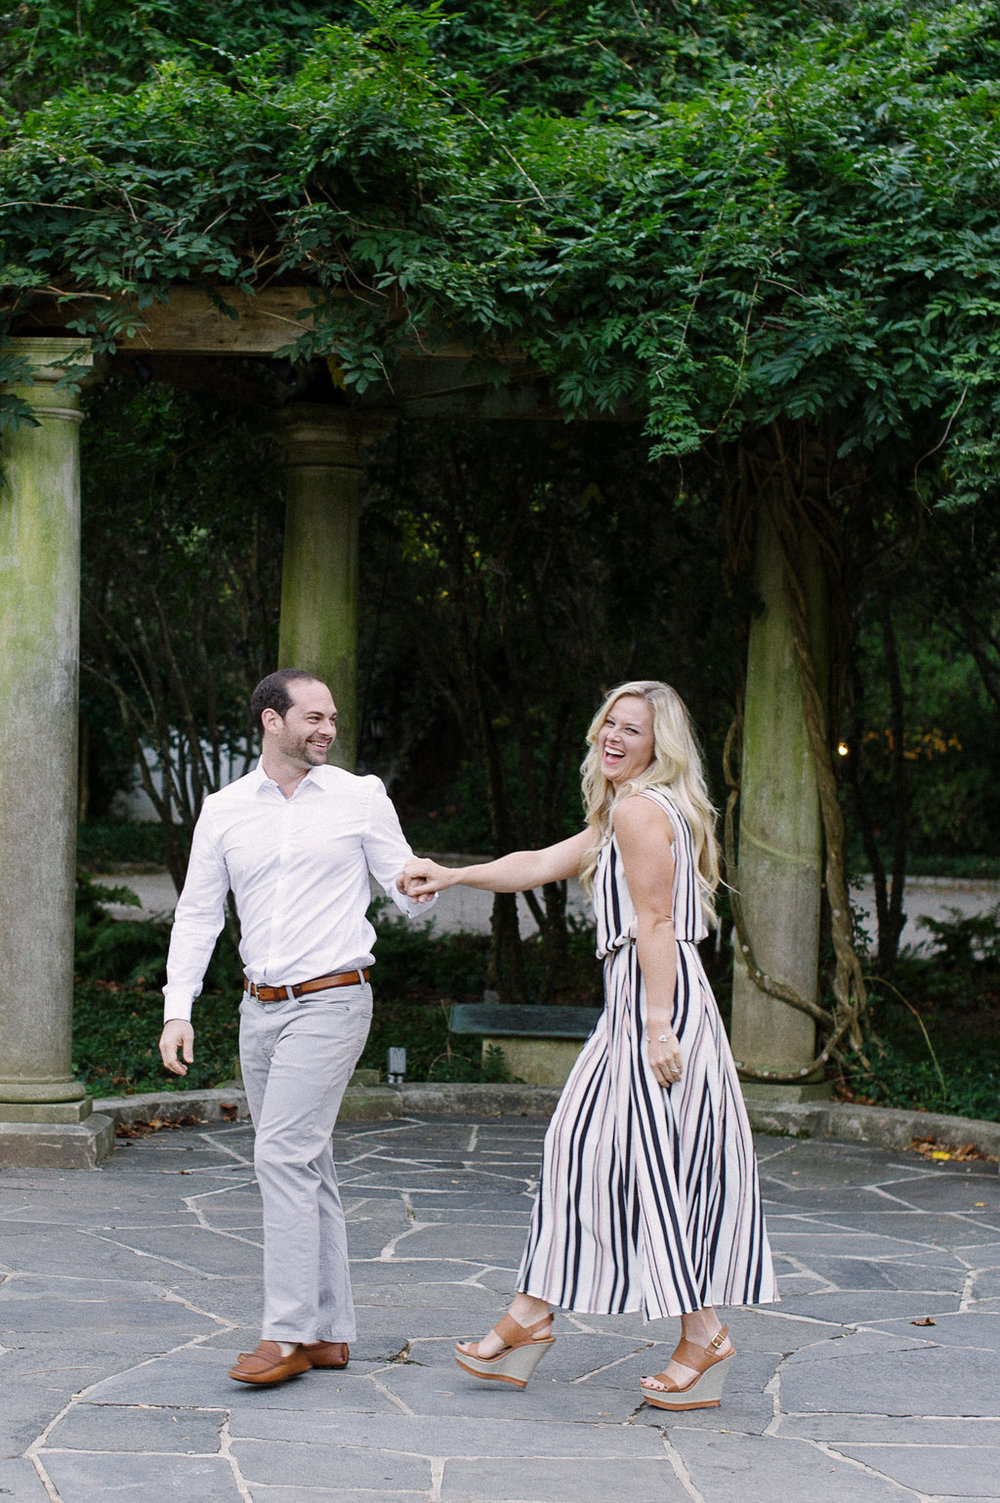 Cator-Woolford-Gardens-Engagement-atlanta-wedding-photographer-hannah-forsberg-8.jpg